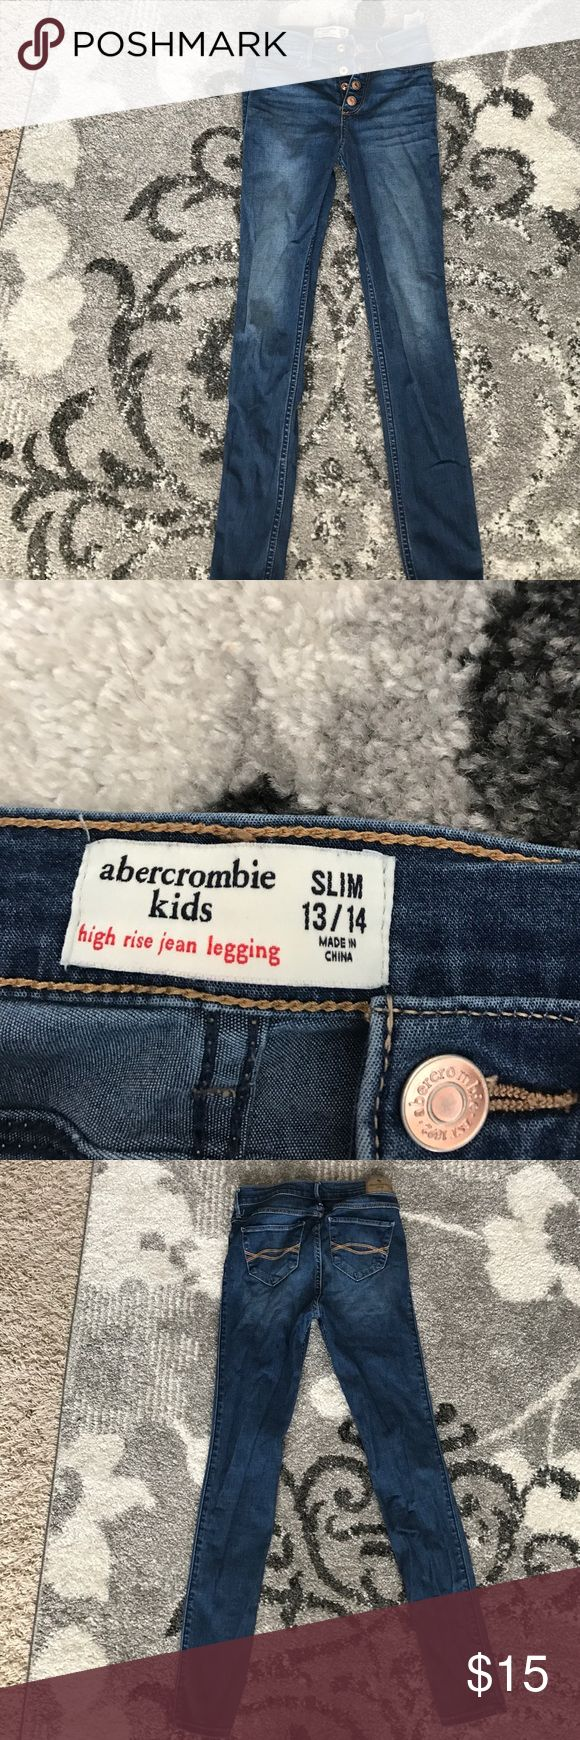 Abercrombie Kids high rise jean leggings 13/14 slim abercrombie kids Bottoms Jeans